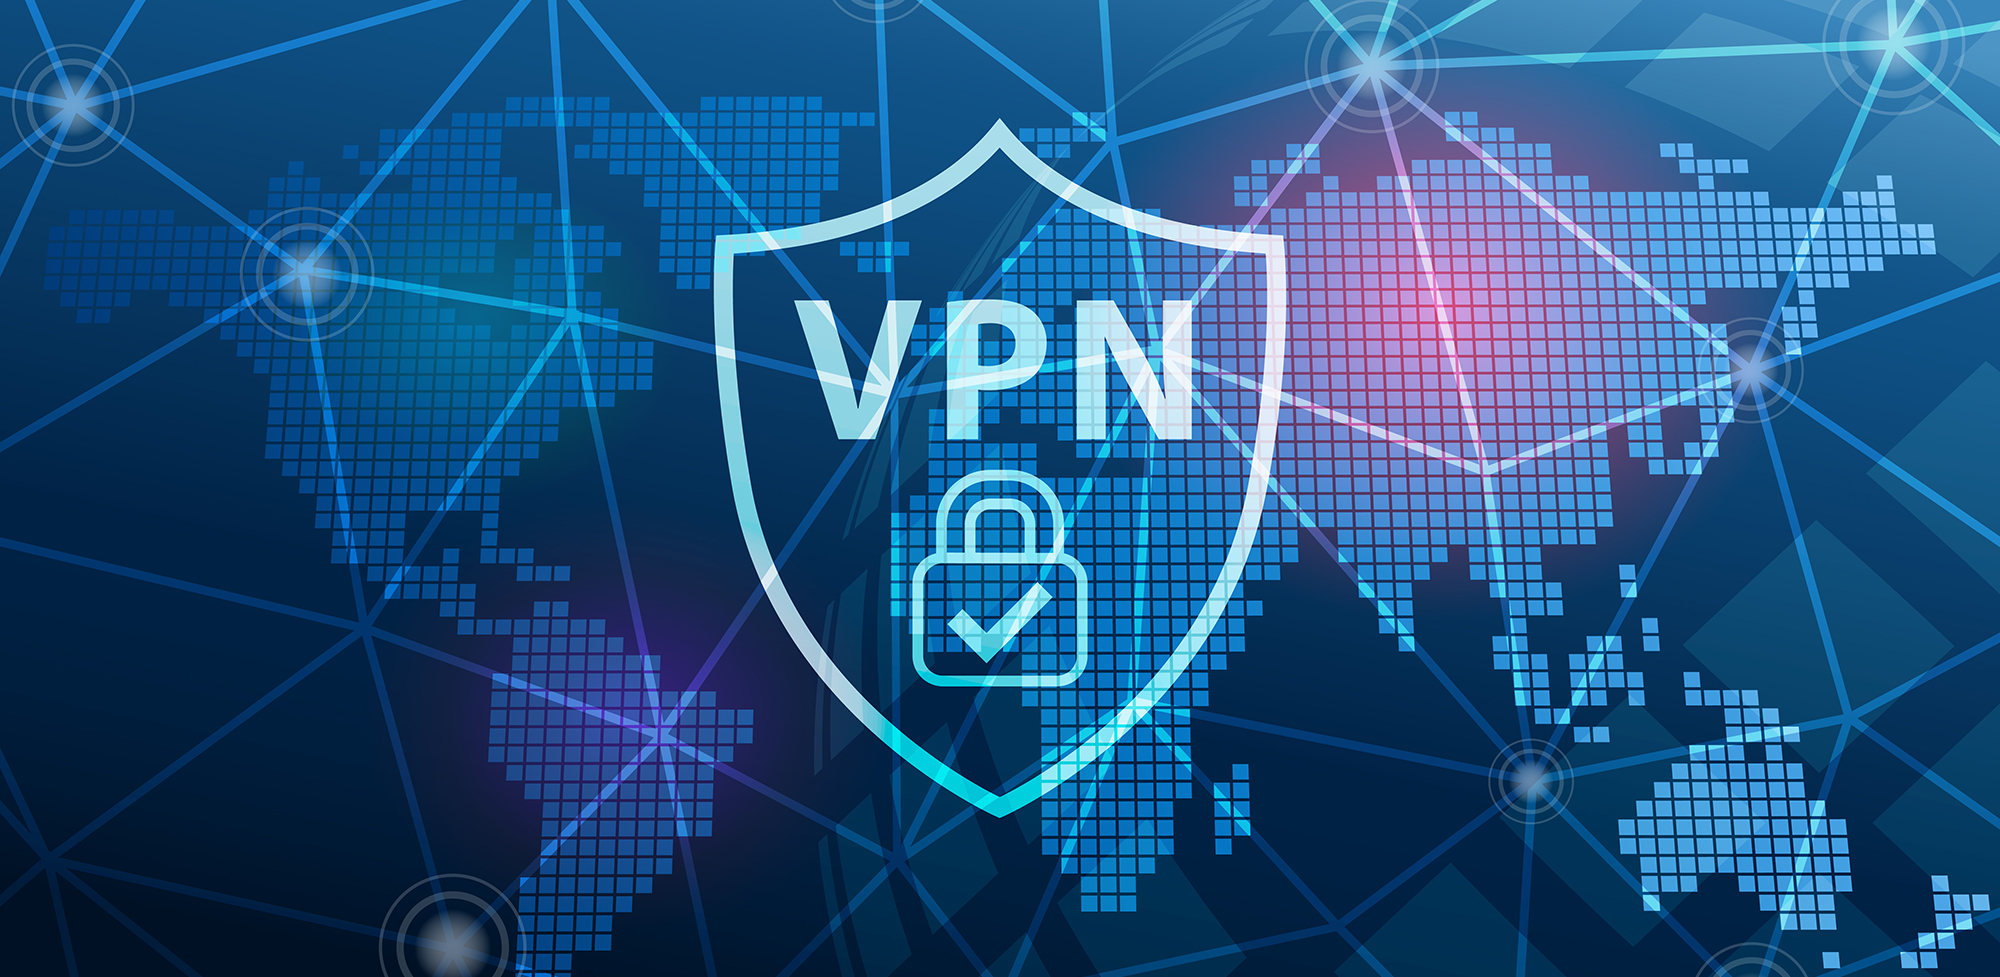 Come proteggere la tua privacy con una VPN